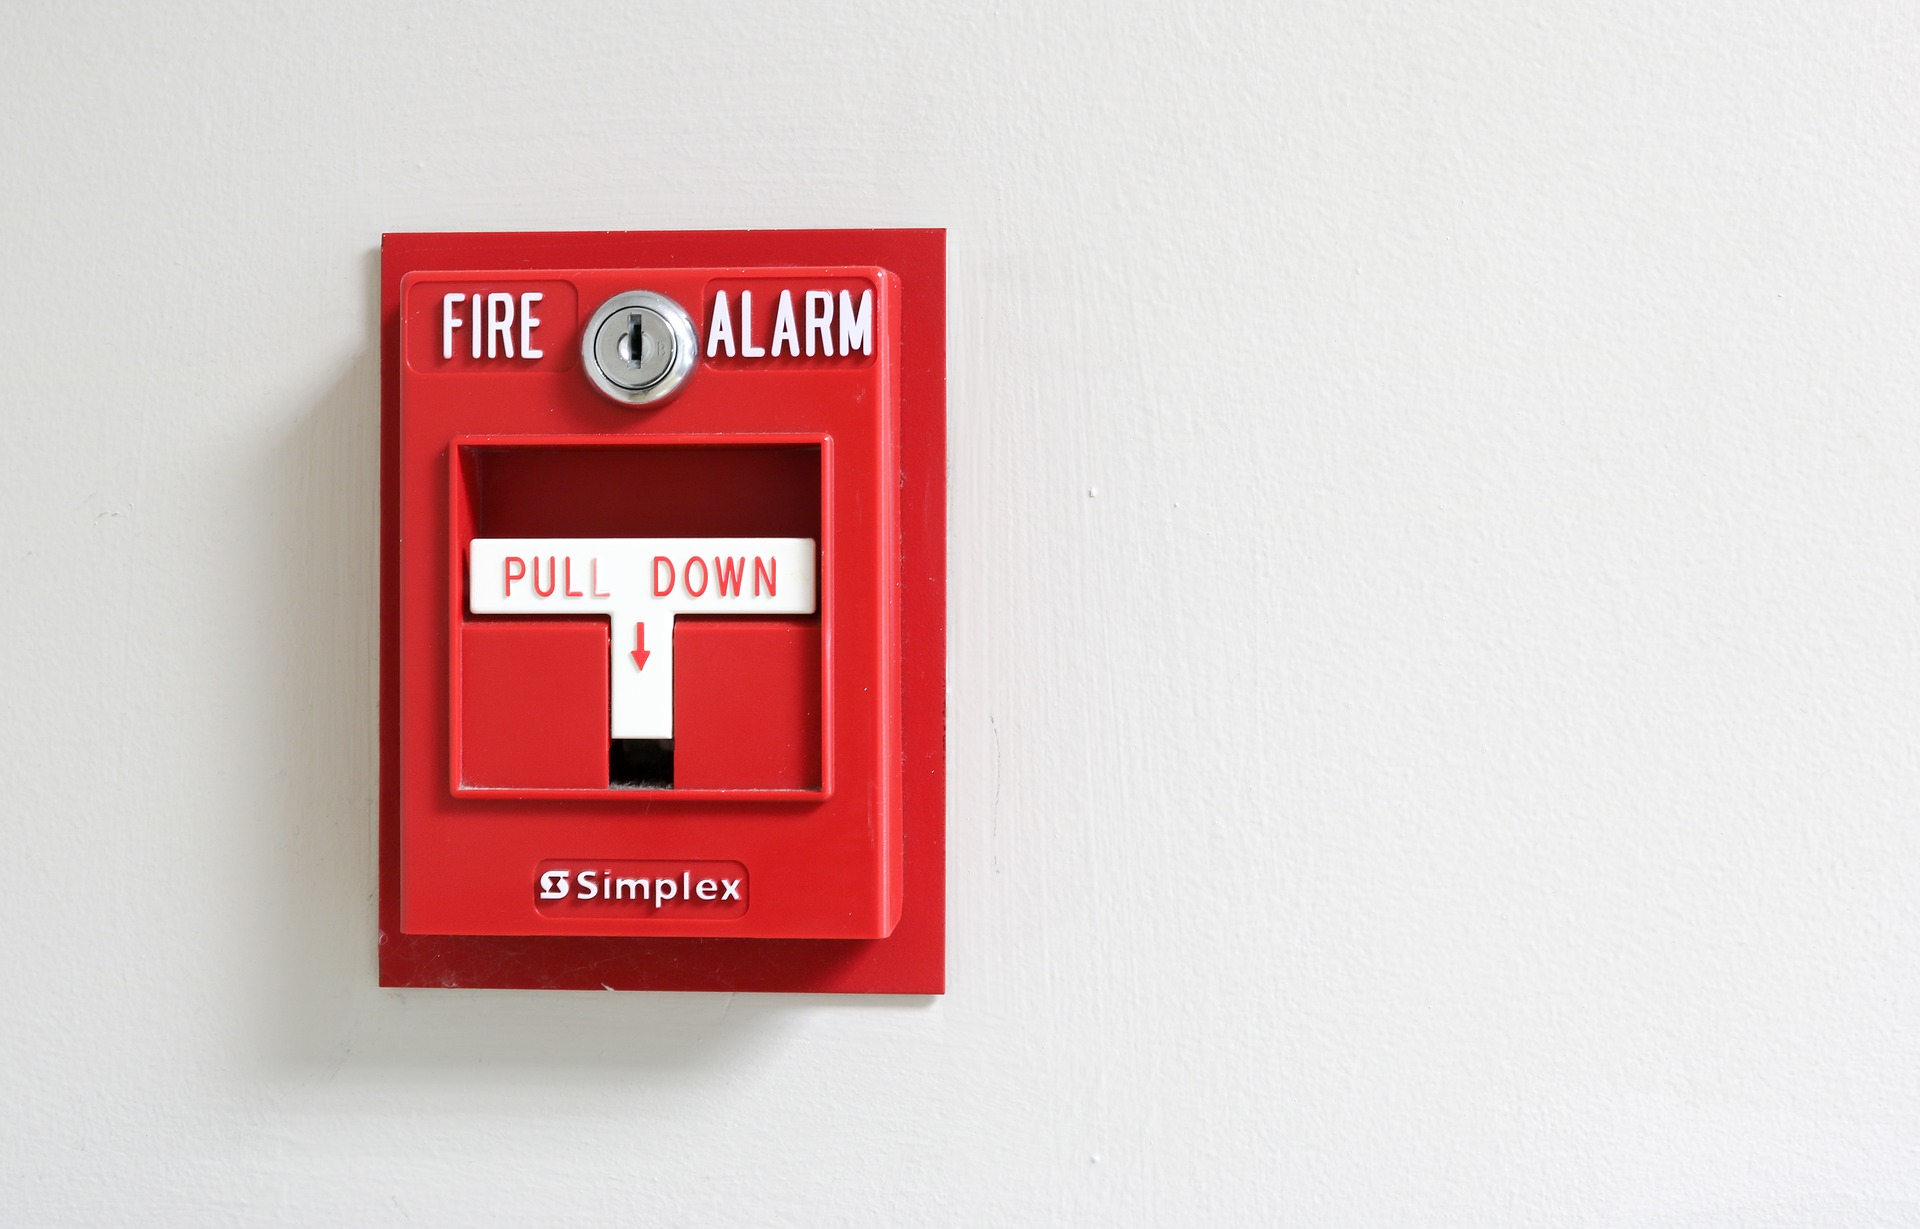 miami moms blog Campus Fire Safety: Preparing Your College Student